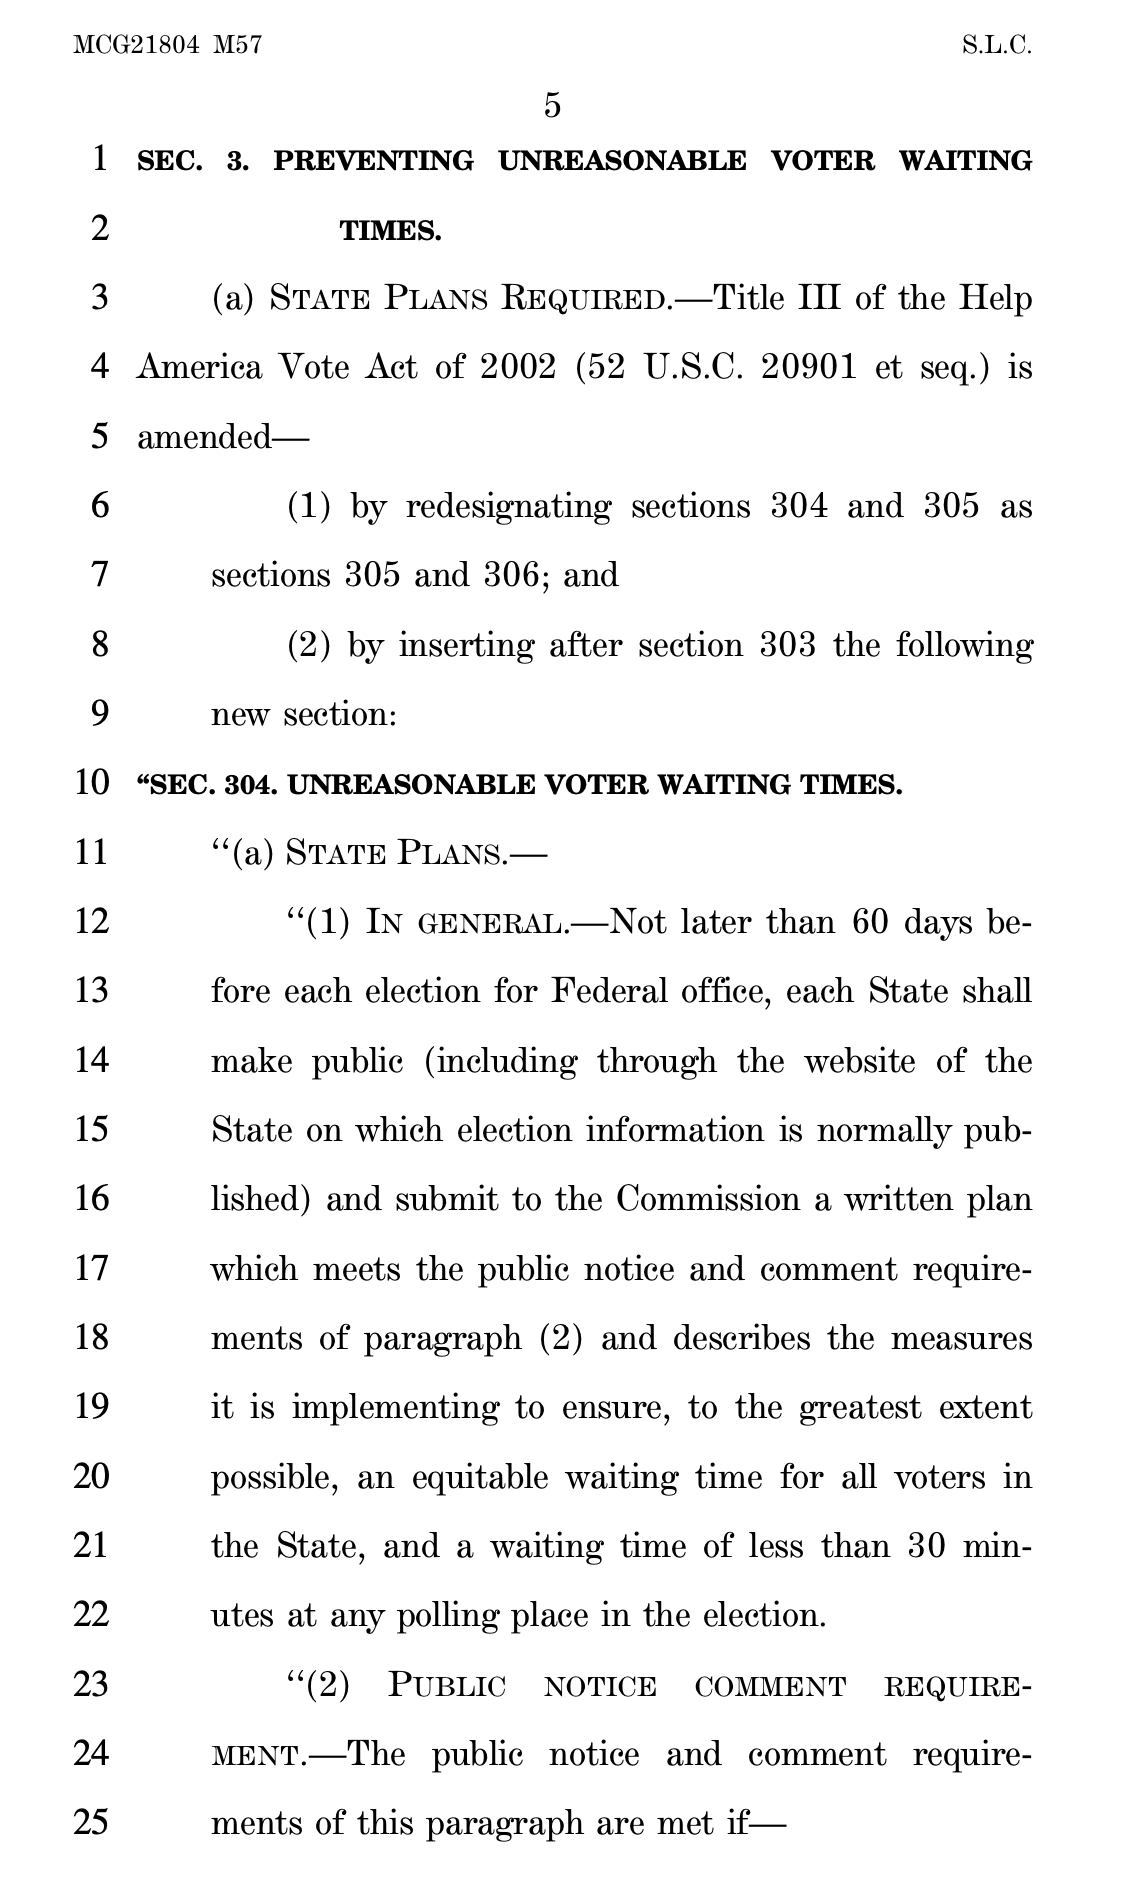 Screen-Shot-2021-06-17-at-4.02.52-PM Democrats Introduces Law To Guarantee Vote Within 30 Minutes Corruption Crime Featured Politics Top Stories